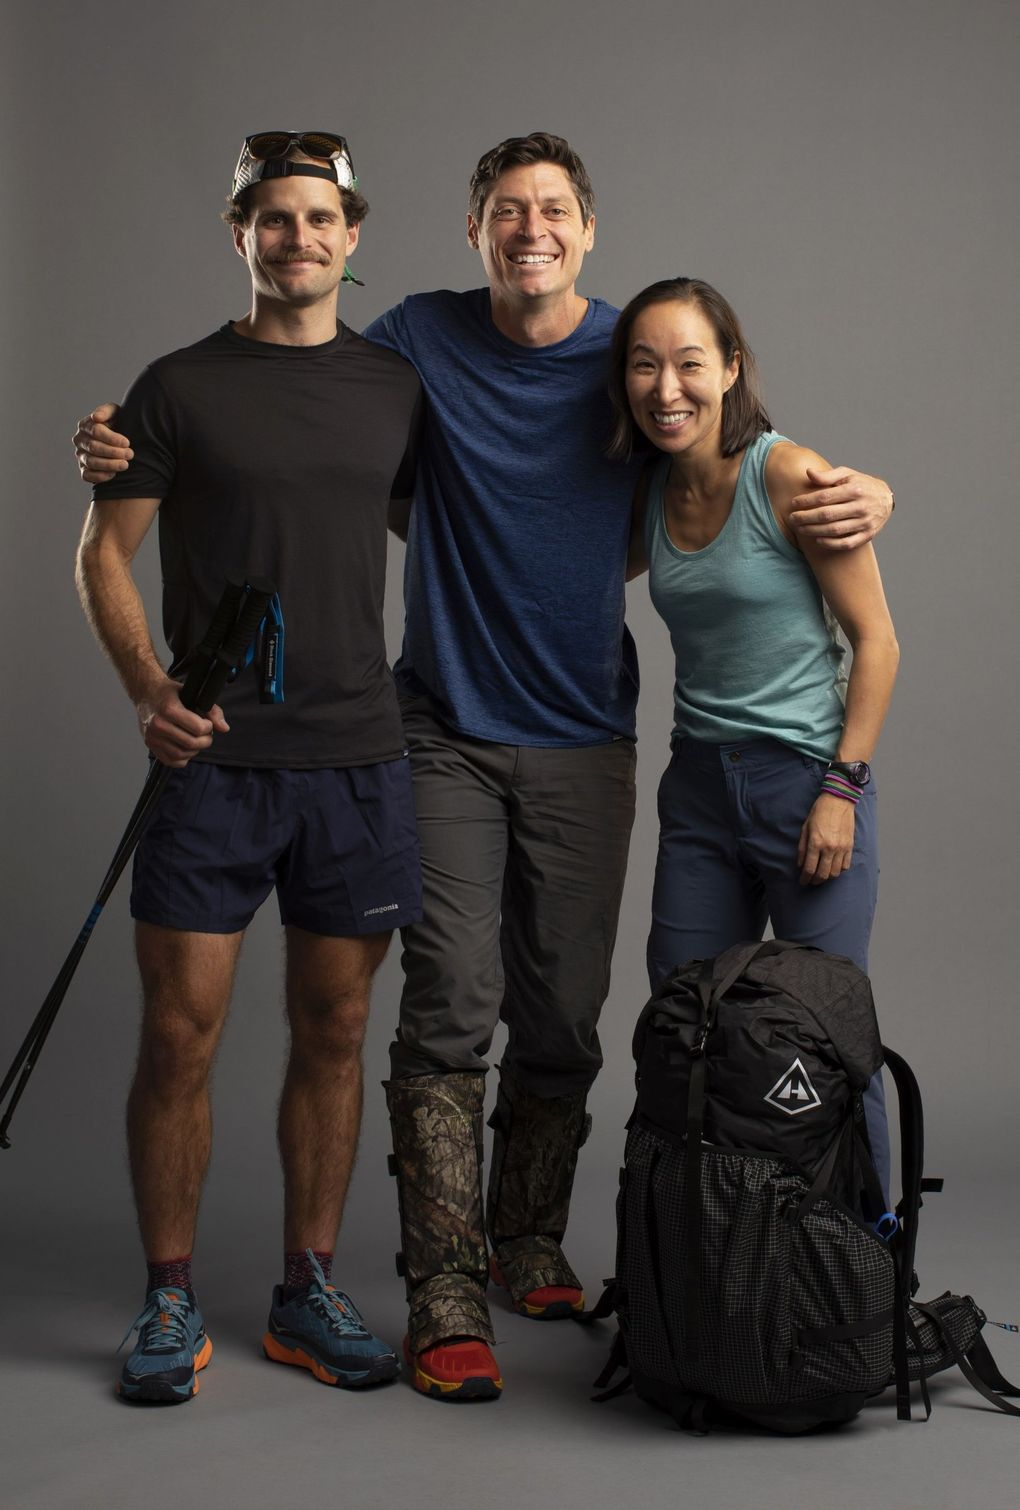 """Jay Wyatt, James Batey and Marilina Kim, teachers from The Bush School in Seattle, make up Team Southeast Asia on """"Race to the Center of the Earth."""" (Erik Umphery / National Geographic)"""